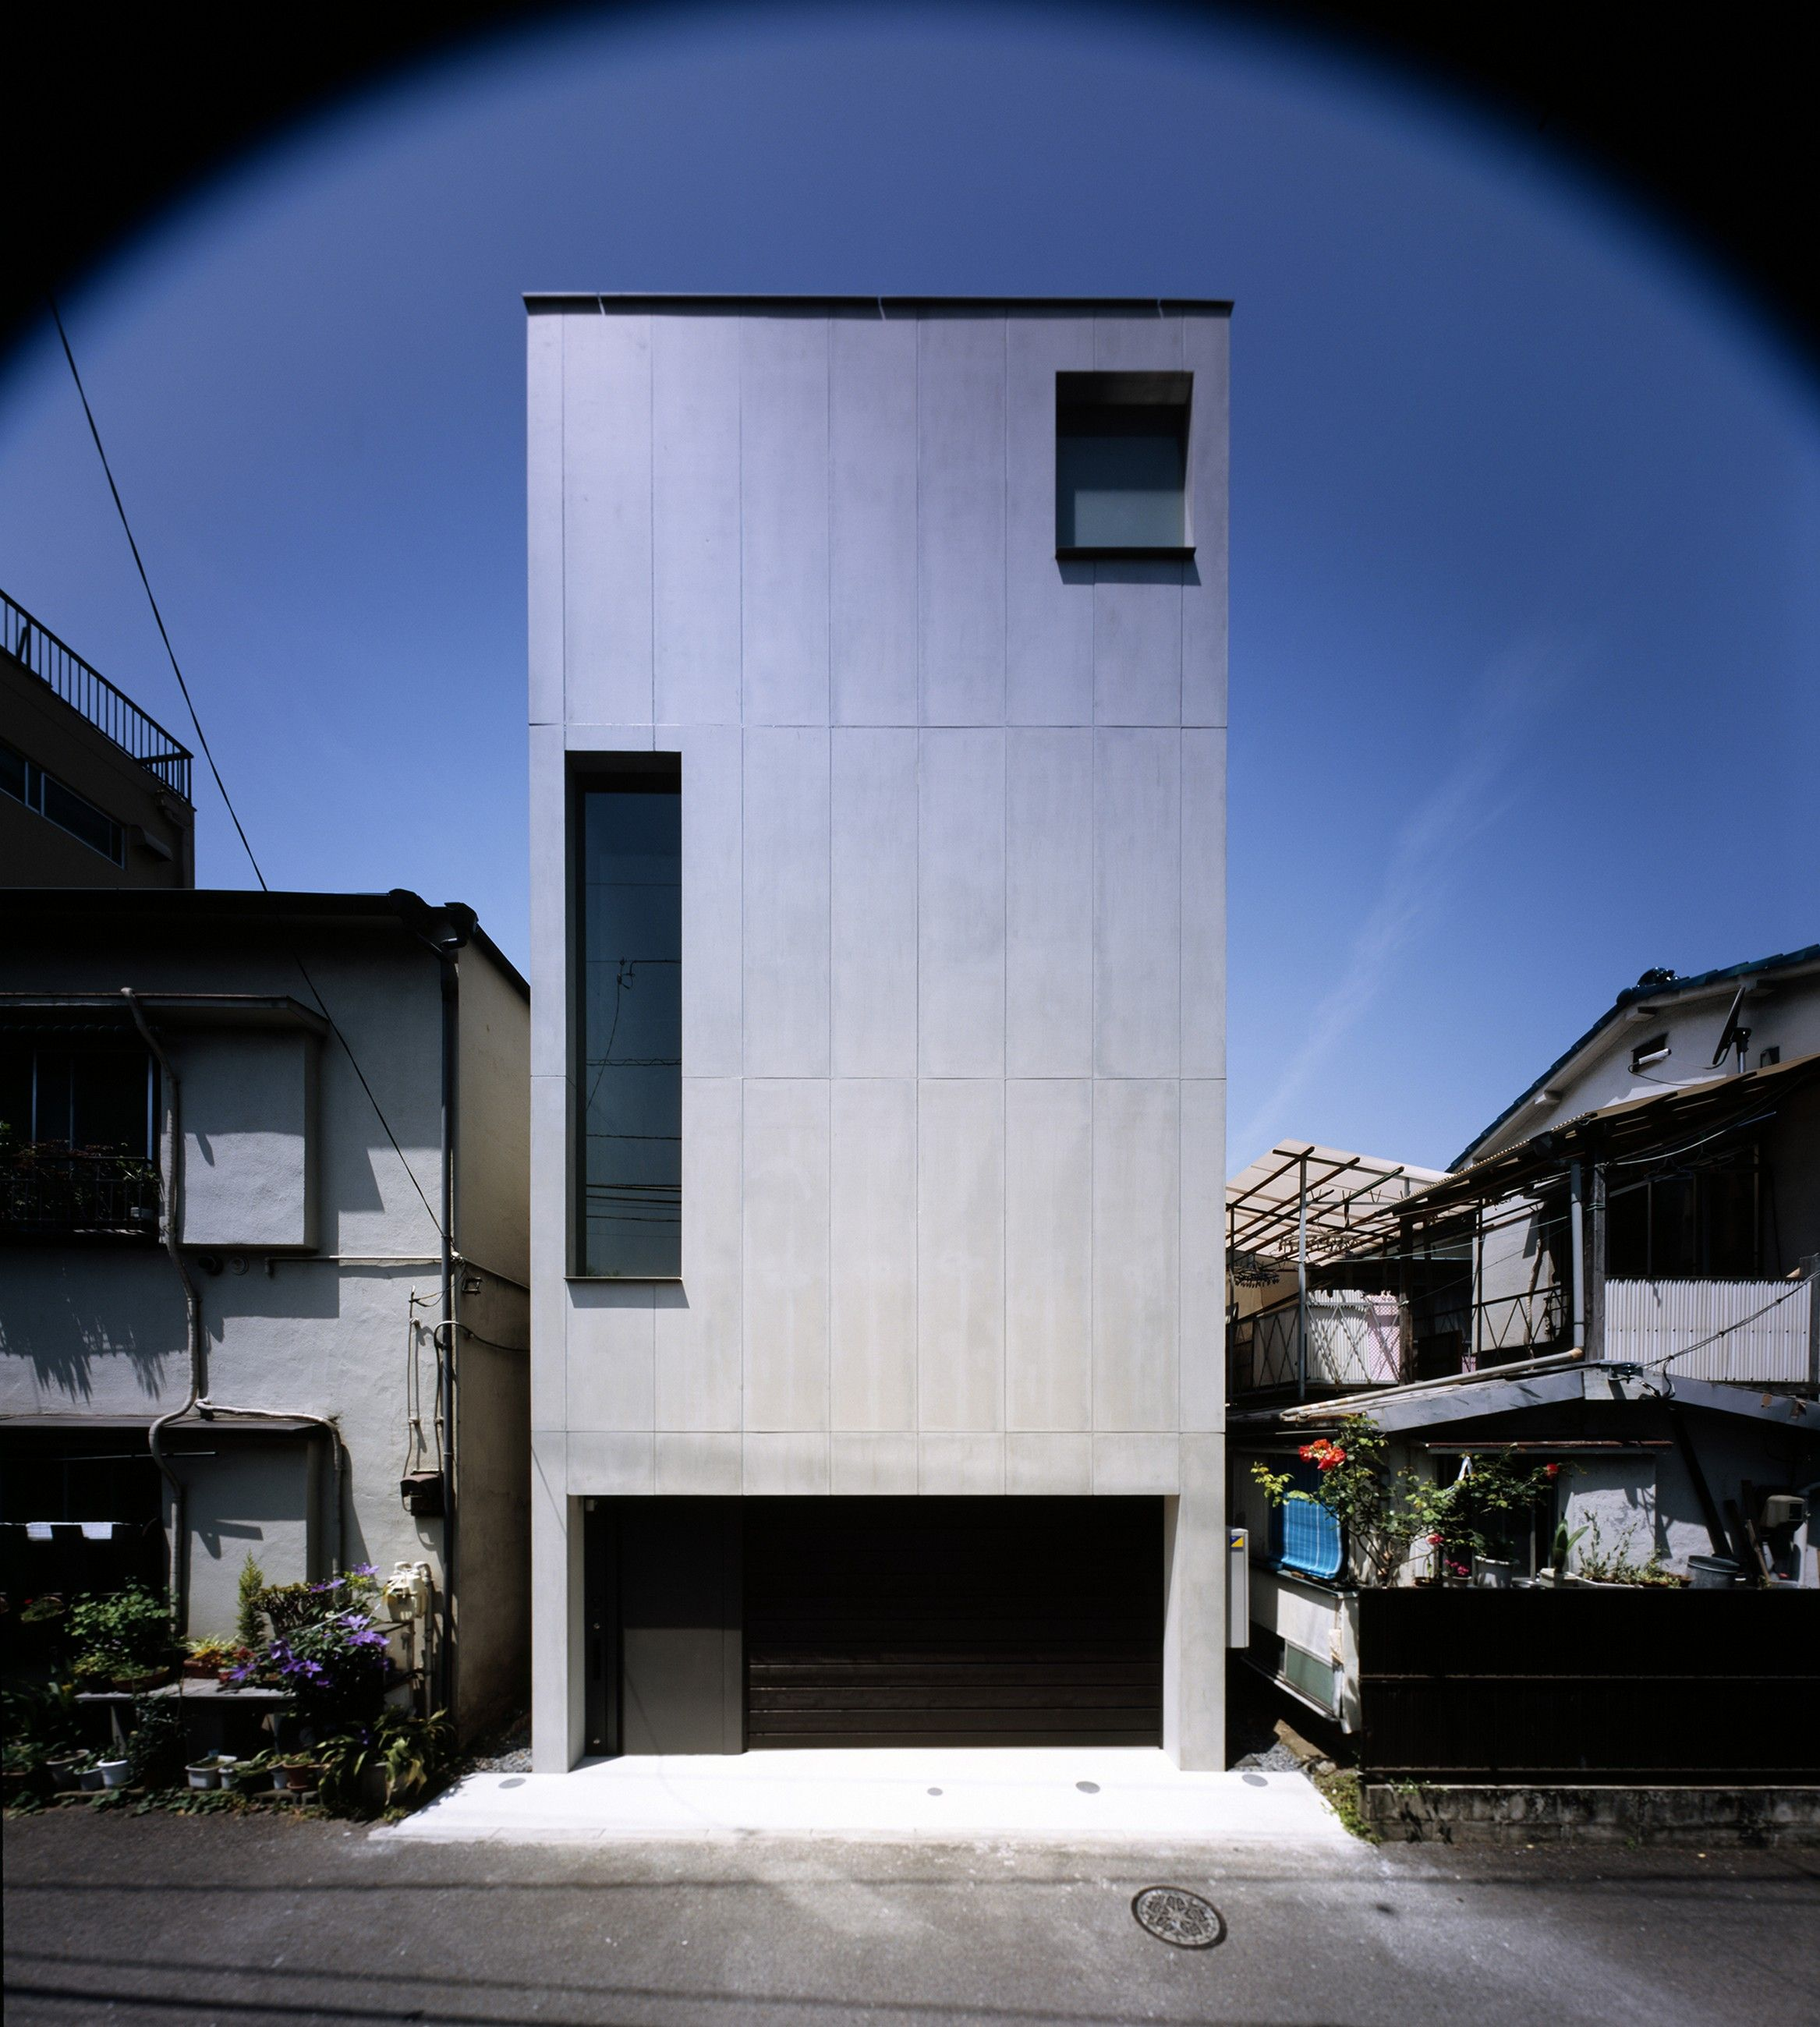 2-Courts House is built on a typical central Tokyo site – small, narrow land, constrained by closely built neighbouring properties on three sides, with a street frontage on the fourth. These sites often encounter difficulties with privacy and captur